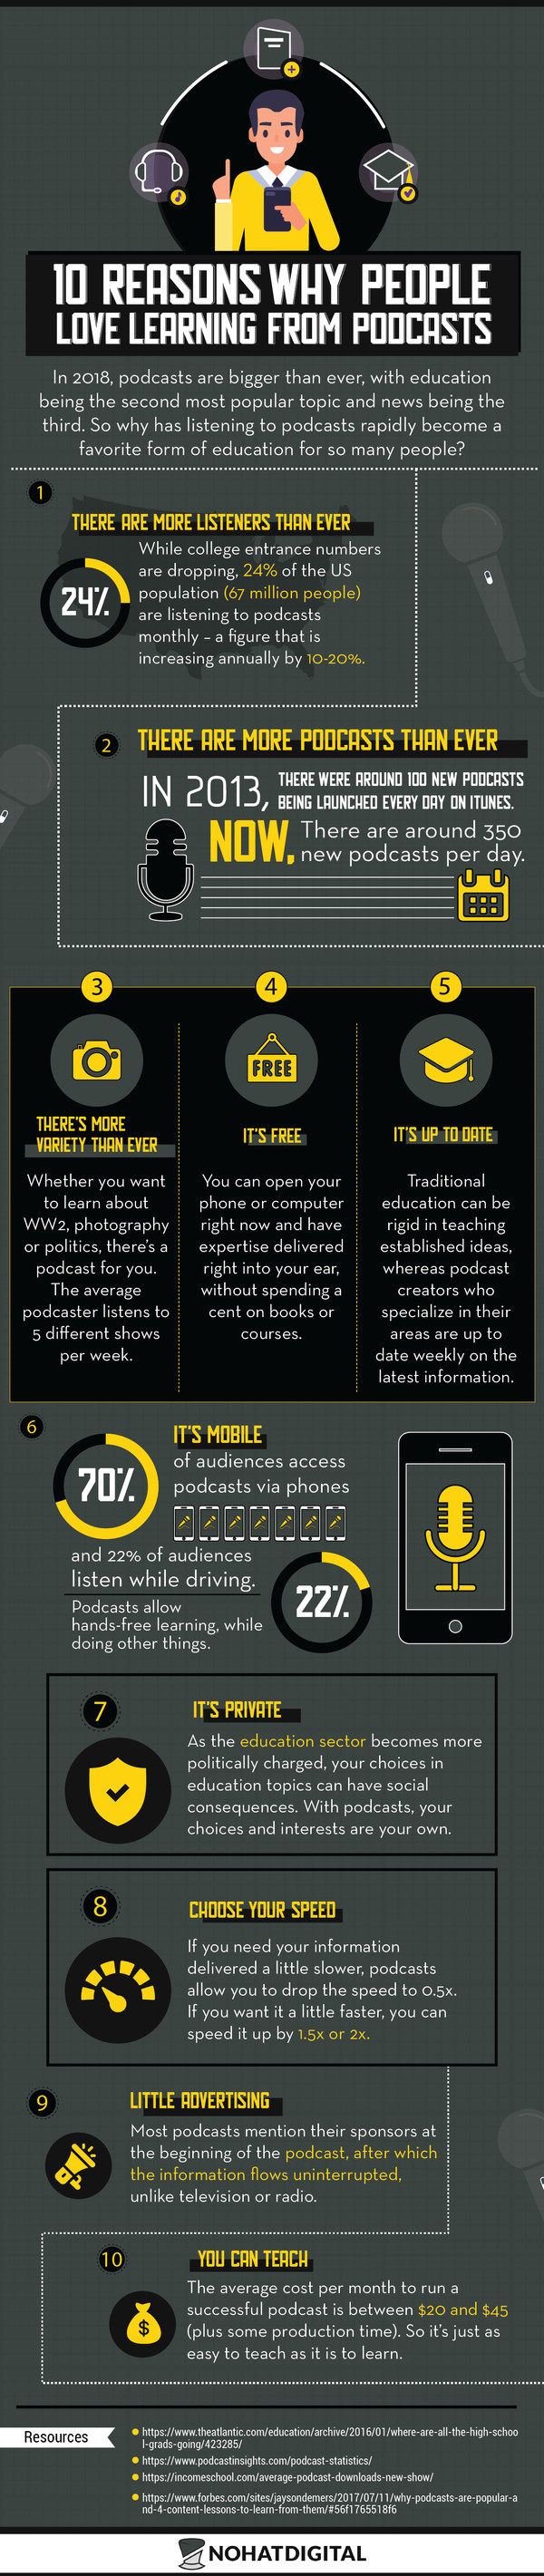 10 Reasons Why People Love Learning From Podcasts